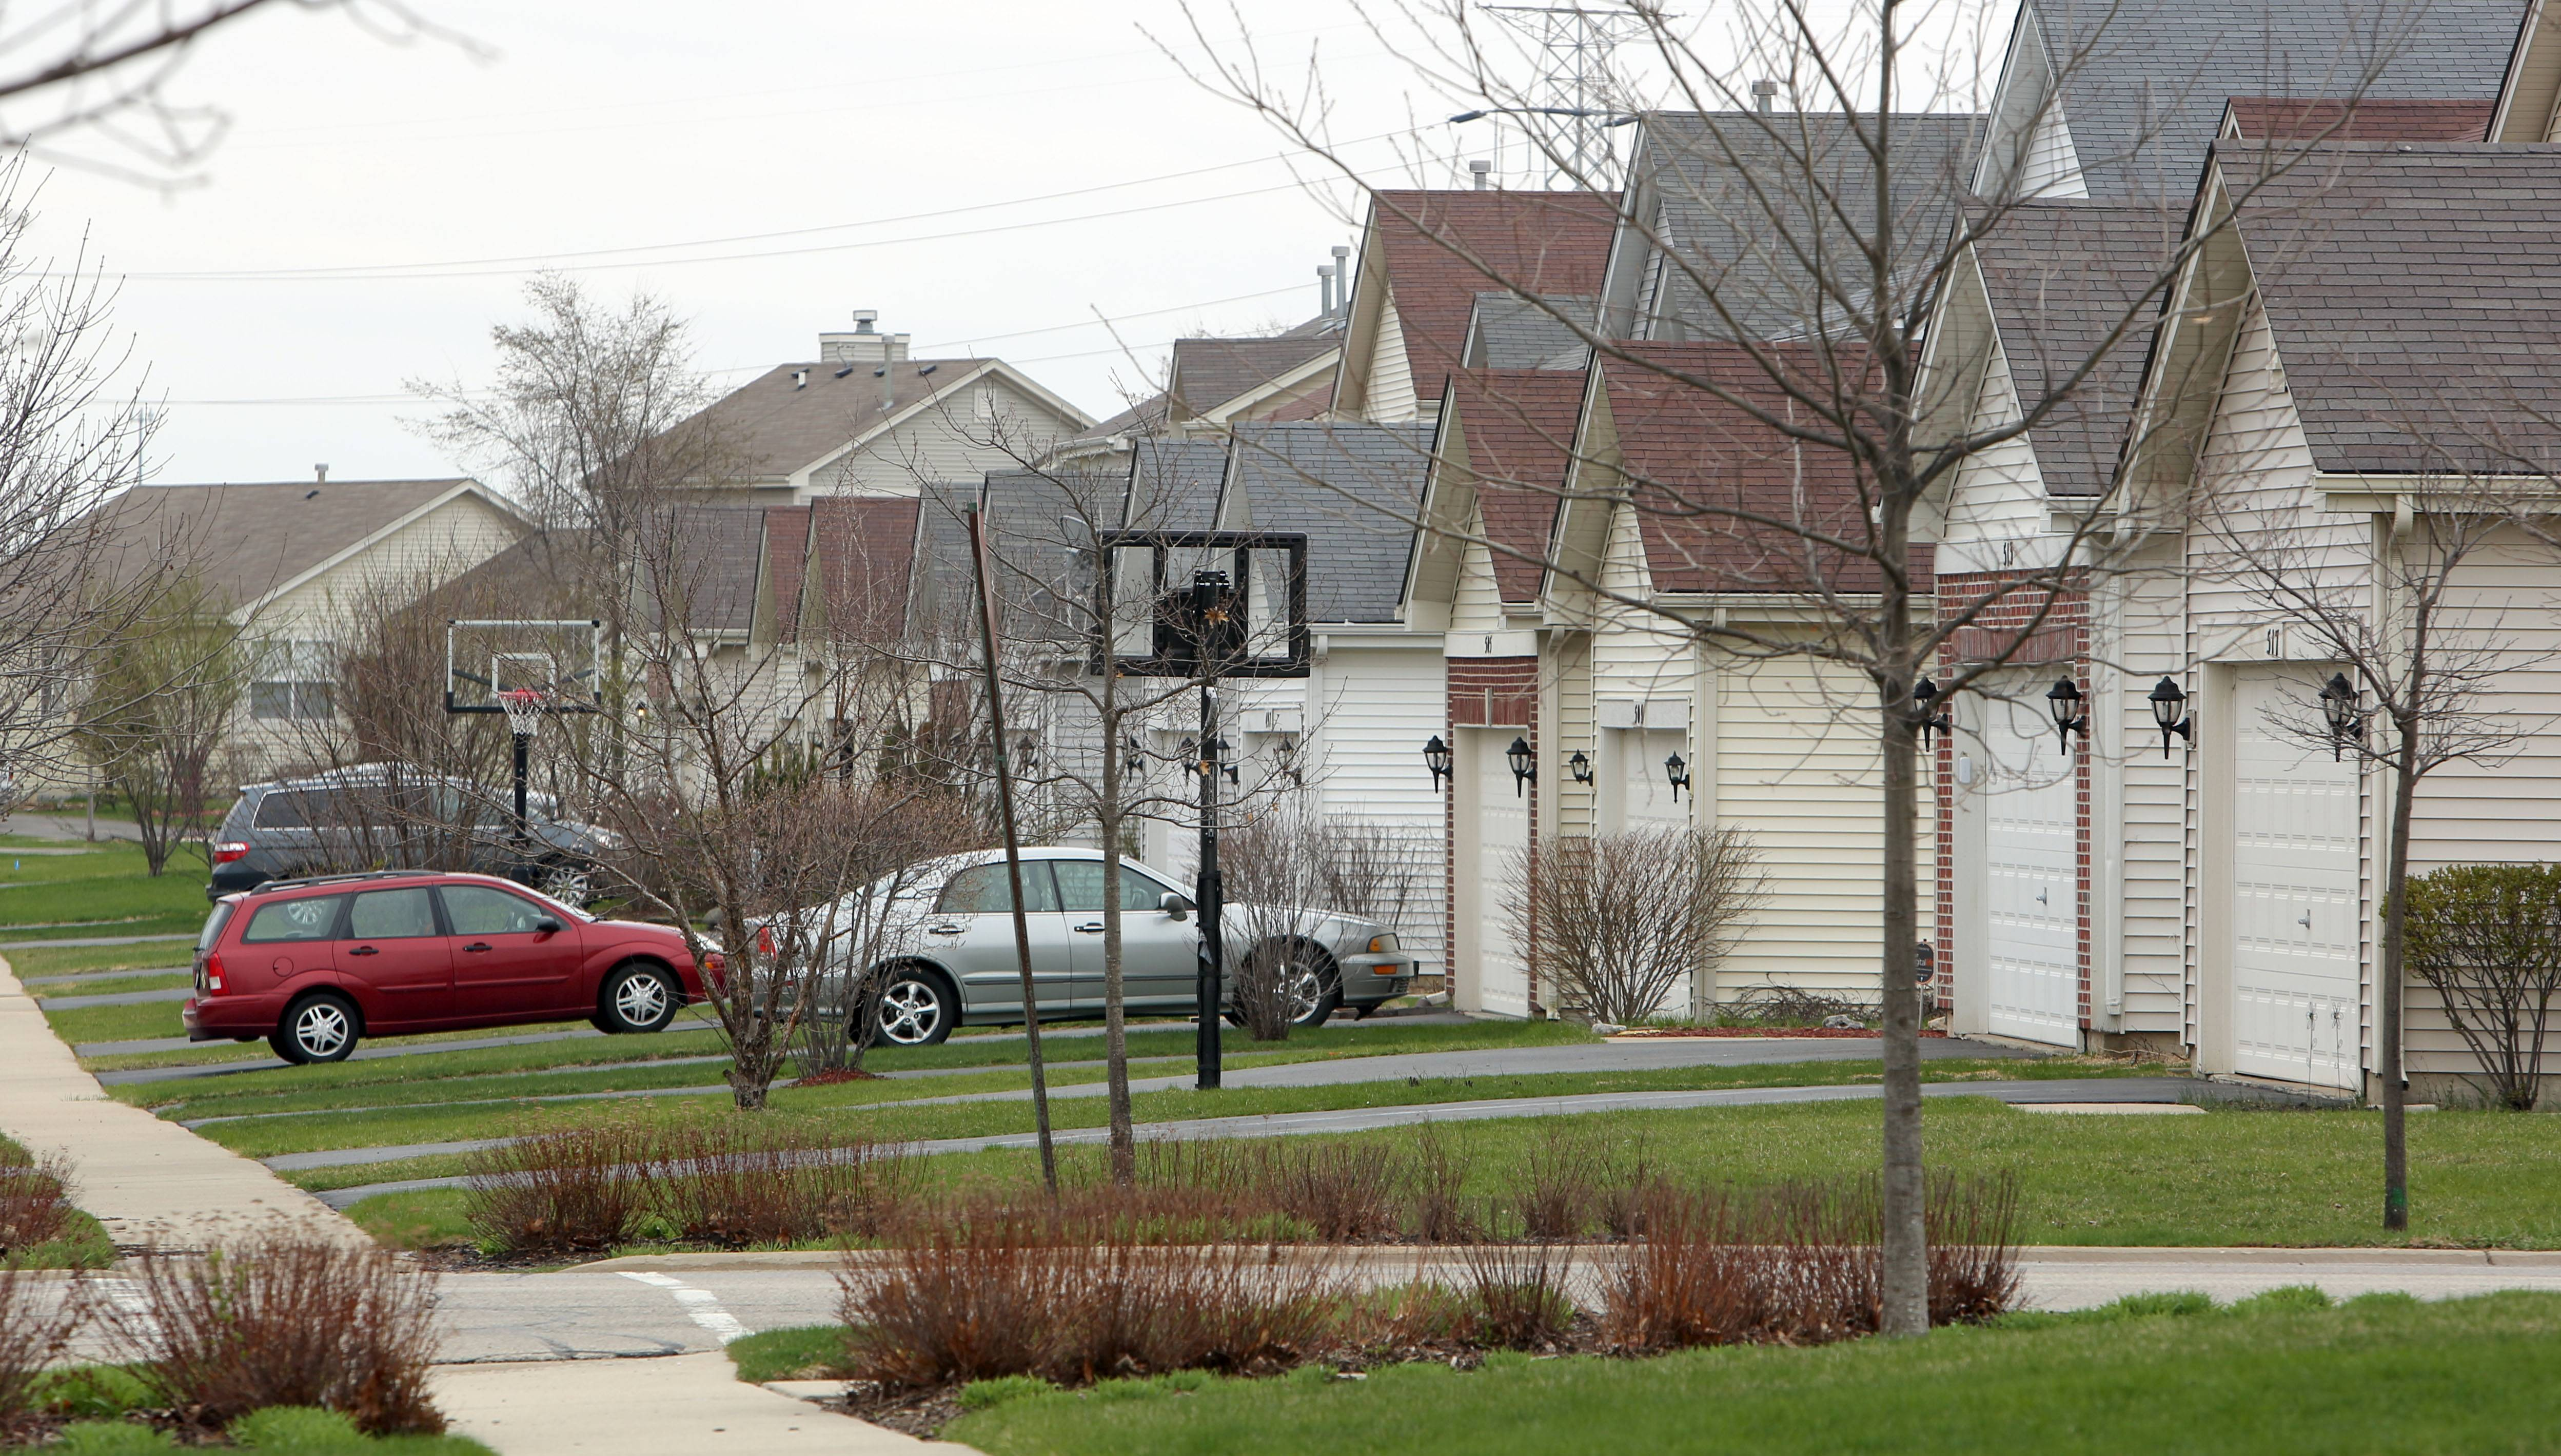 Homes along Hamlin Lane in Round Lake are typical of those found in Lakewood Grove.